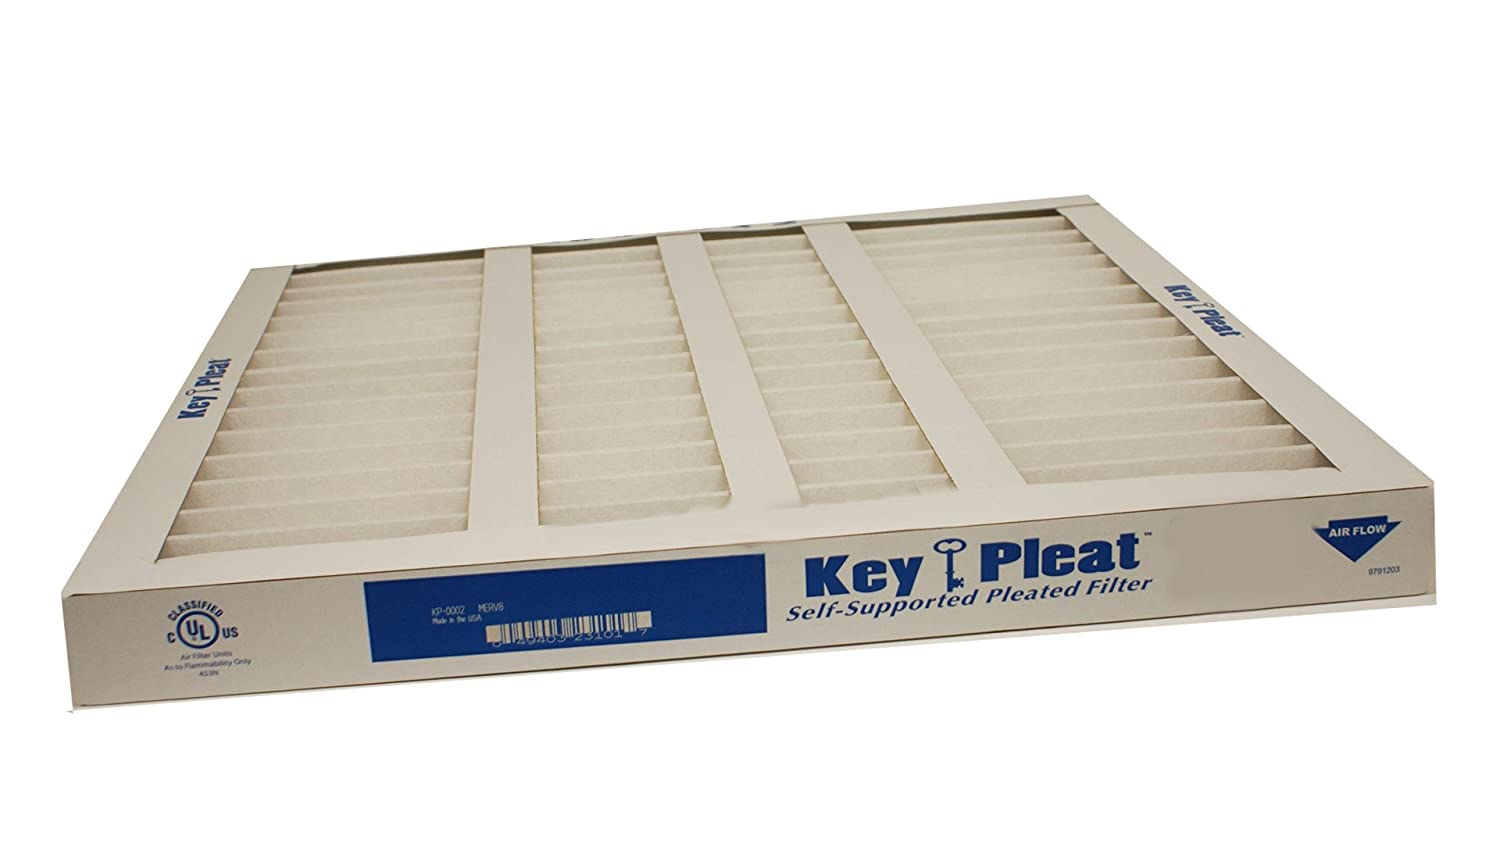 Sterling Seal and Supply STCC KP 5251072153x1 Purolator Key Pleat Extended Surface Pleated Air Filter Mechanical MERV 8 18 W x 24 H x 1 D